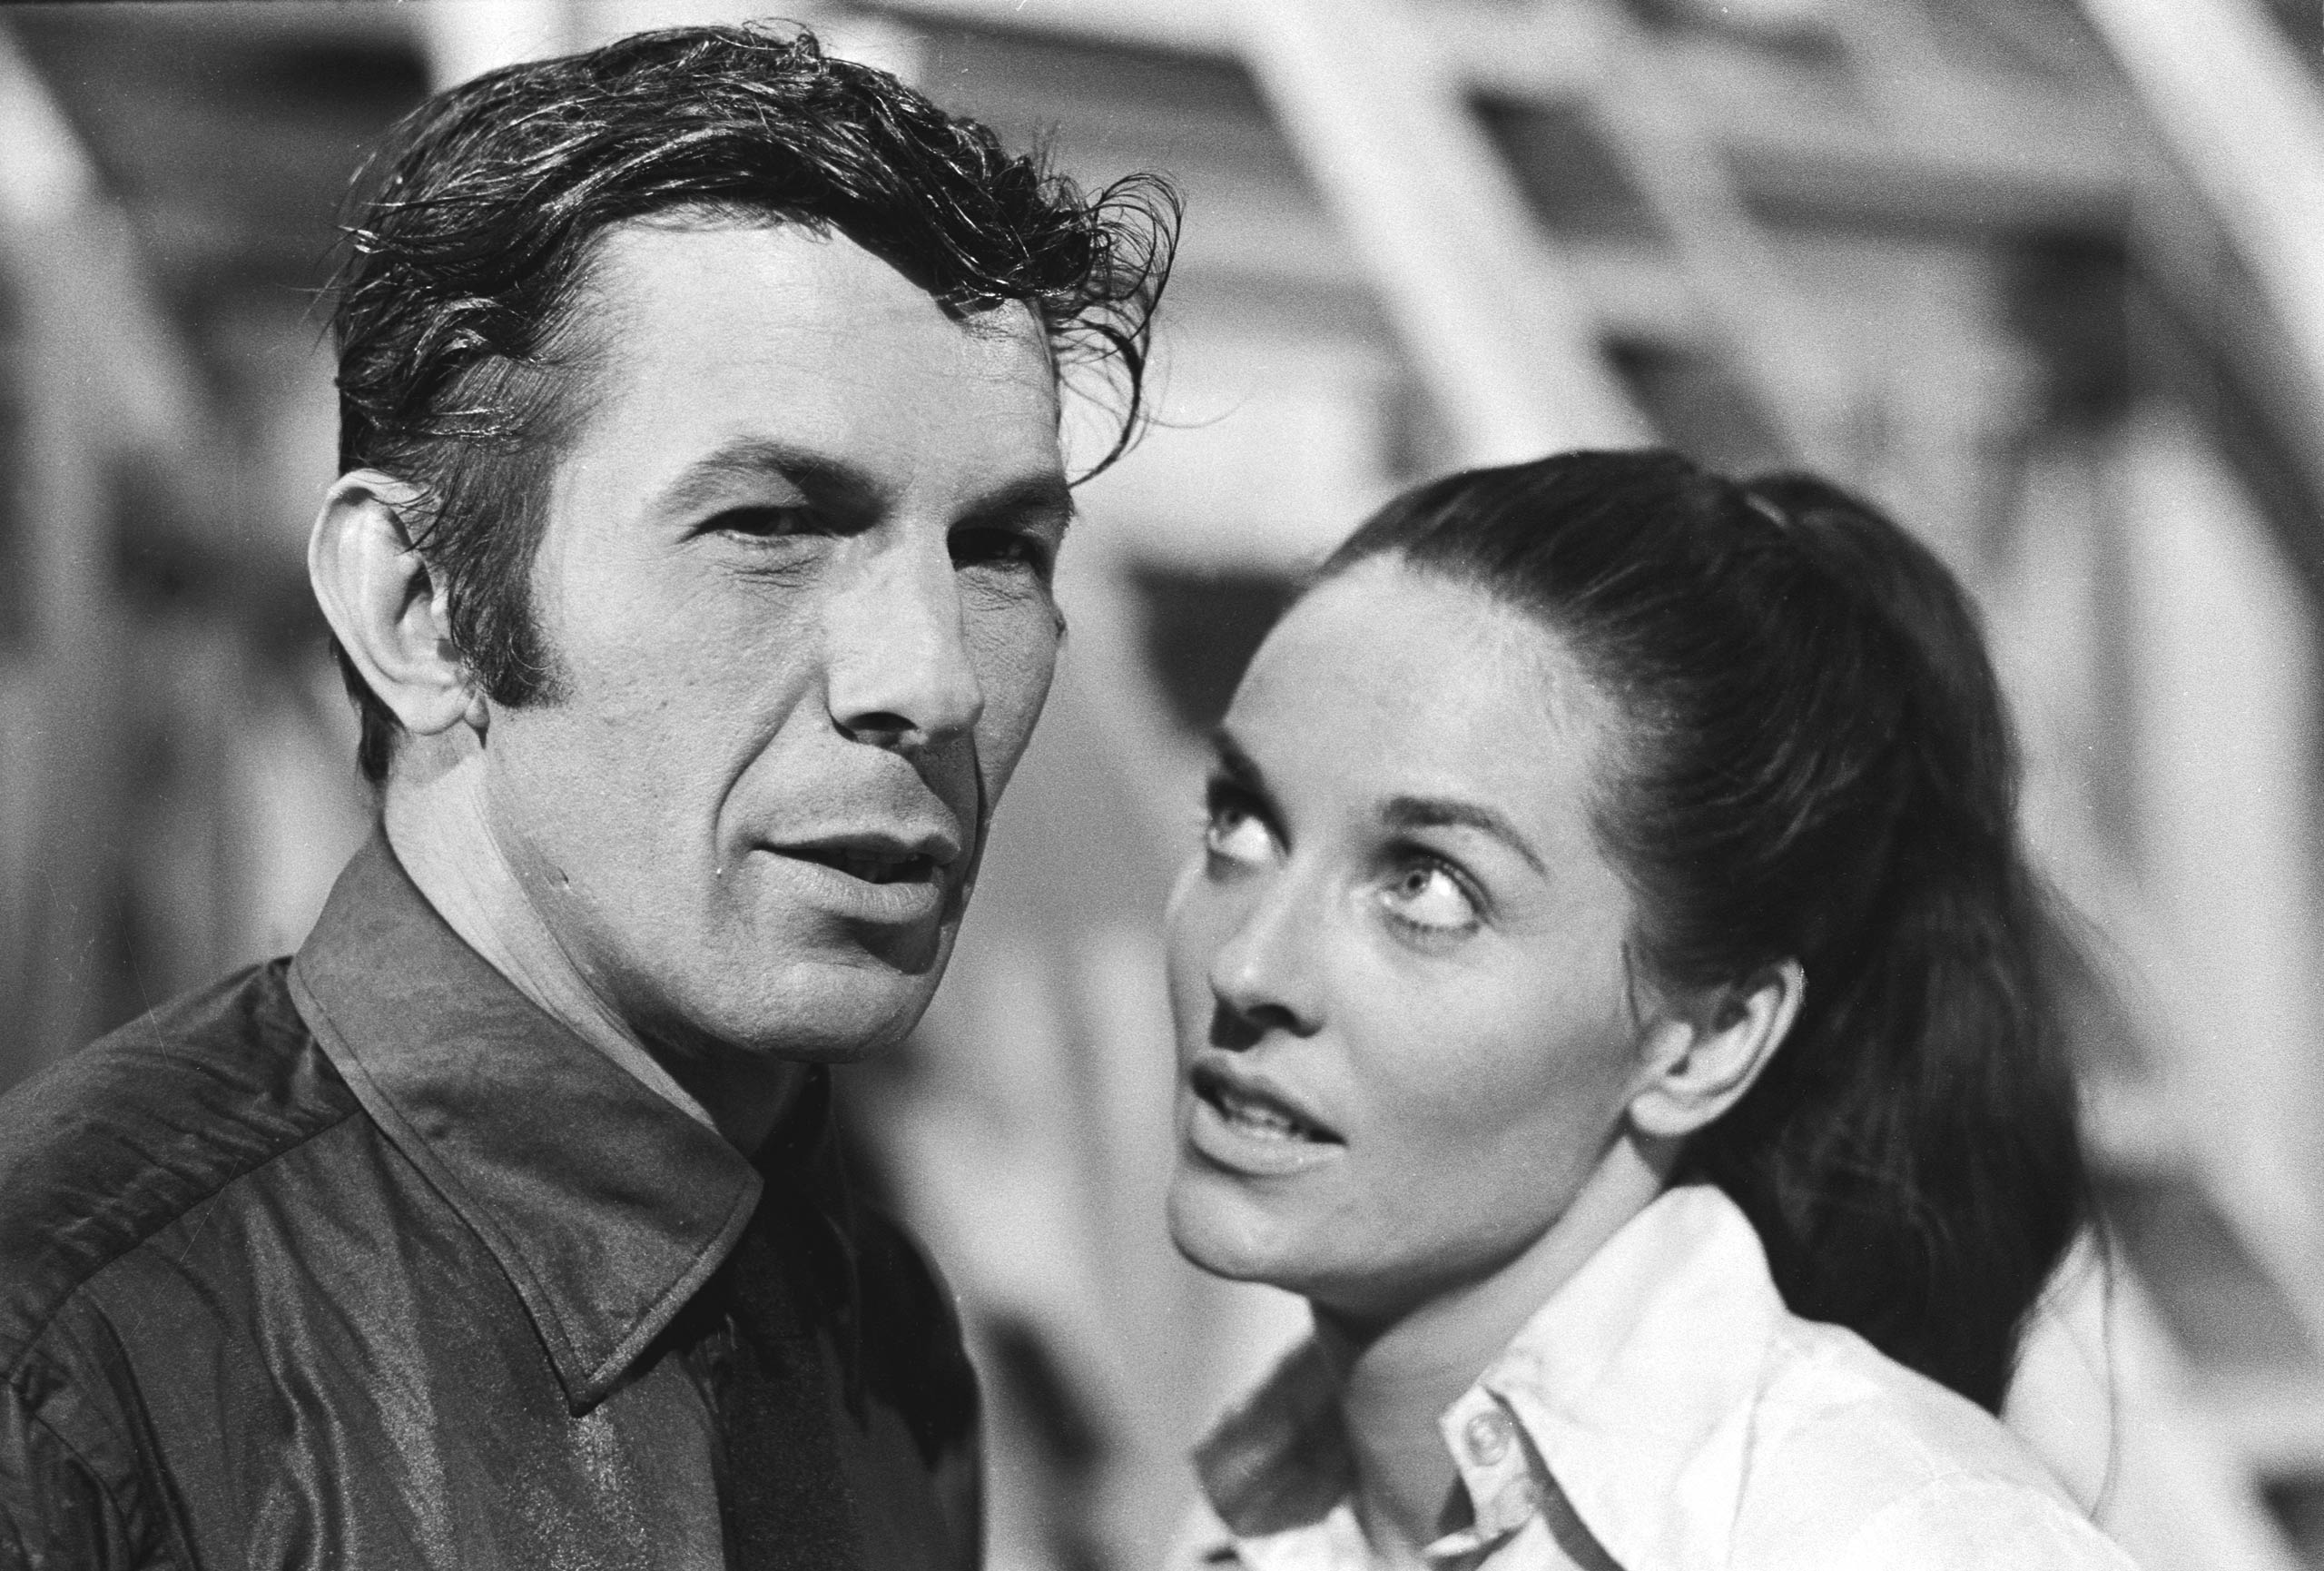 Leonard Nimoy as Paris and Lee Meriwether as Tracey in <i>Mission Impossible</i> in 1969.